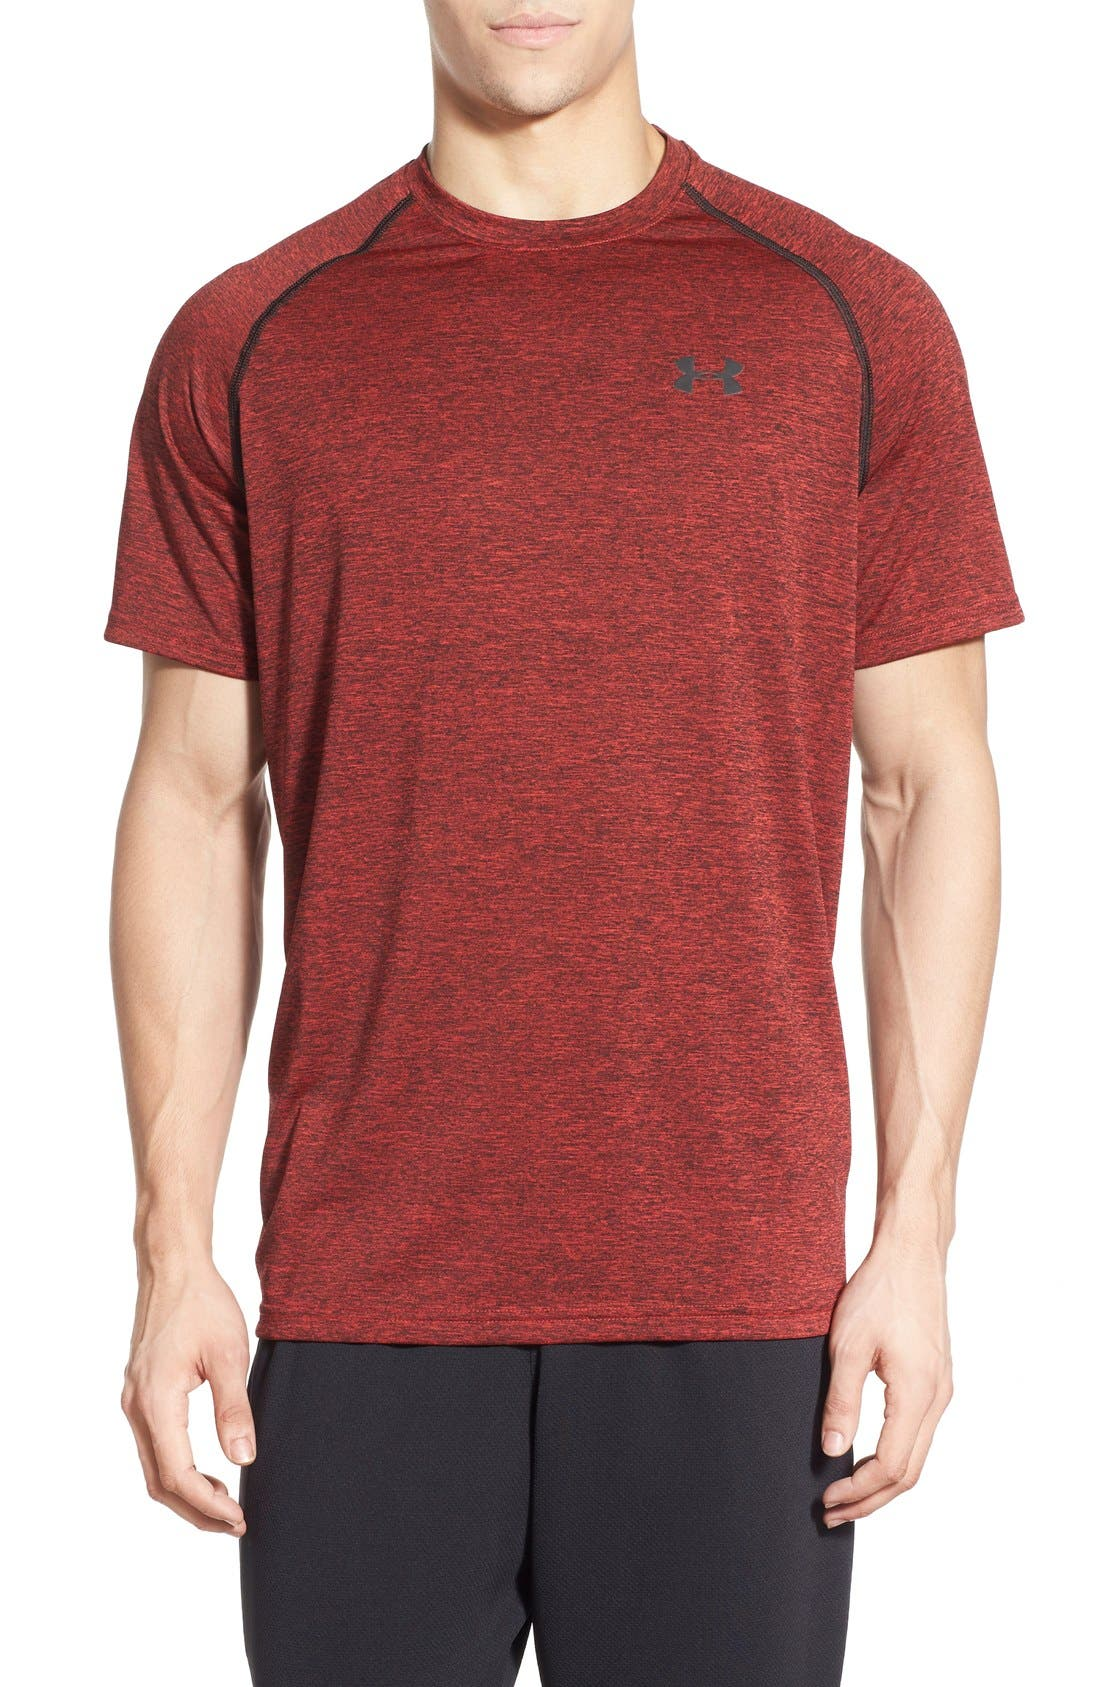 Alternate Image 1 Selected - Under Armour 'UA Tech' Loose Fit Short Sleeve T-Shirt